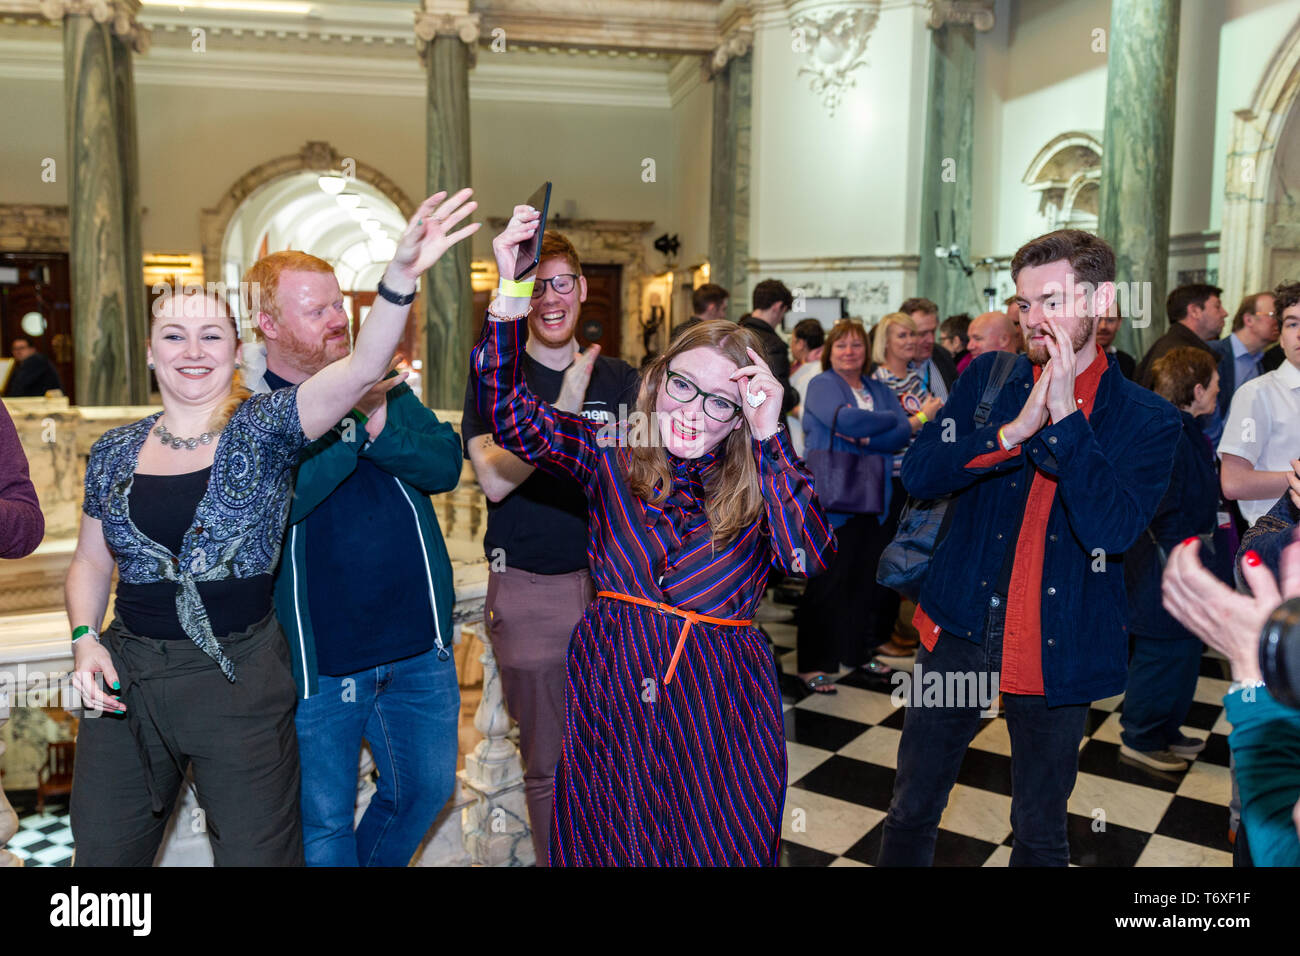 Belfast, UK. 03rd May, 2019. 03/May/2019 Belfast Local Election Results Aine Groogan - Green Party received the most First Prefrences votes in Botanic district Belfast with 1401. The Quota is 1624 to become a Councillor. Credit: Bonzo/Alamy Live News - Stock Image